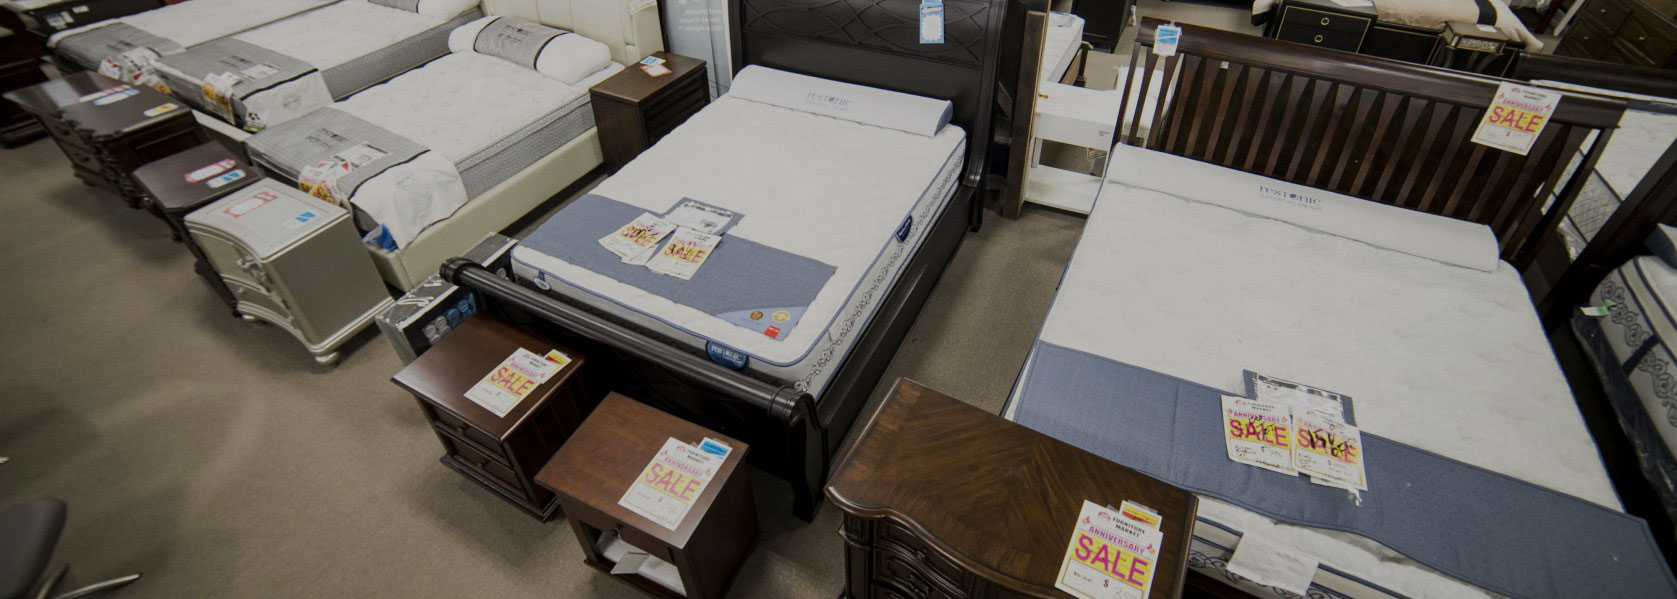 Bed Frames Raleigh Nc Bedroom Furniture Raleigh Nc Smithfield Bed Frames Dressers Mattresses